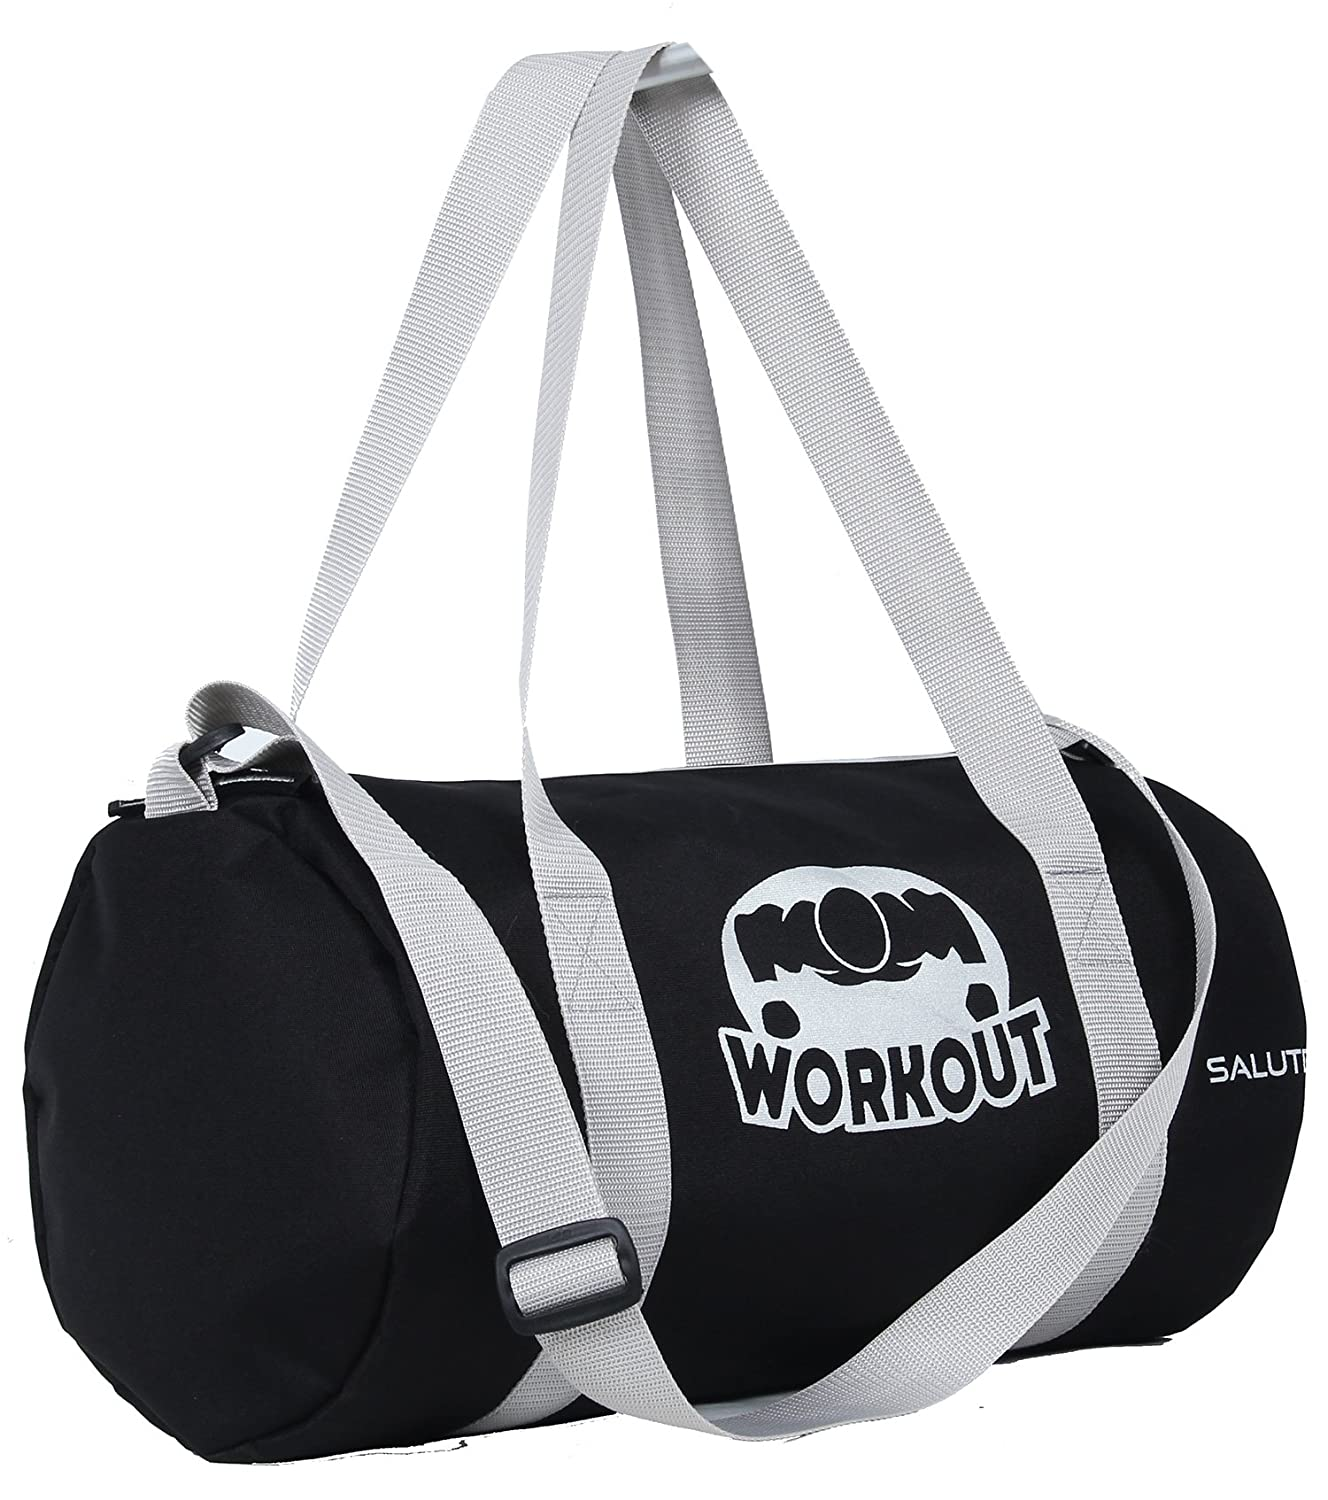 61415c531a SALUTE HUNK WORKOUT 25L Black Duffle Gym Bag  Amazon.in  Bags ...